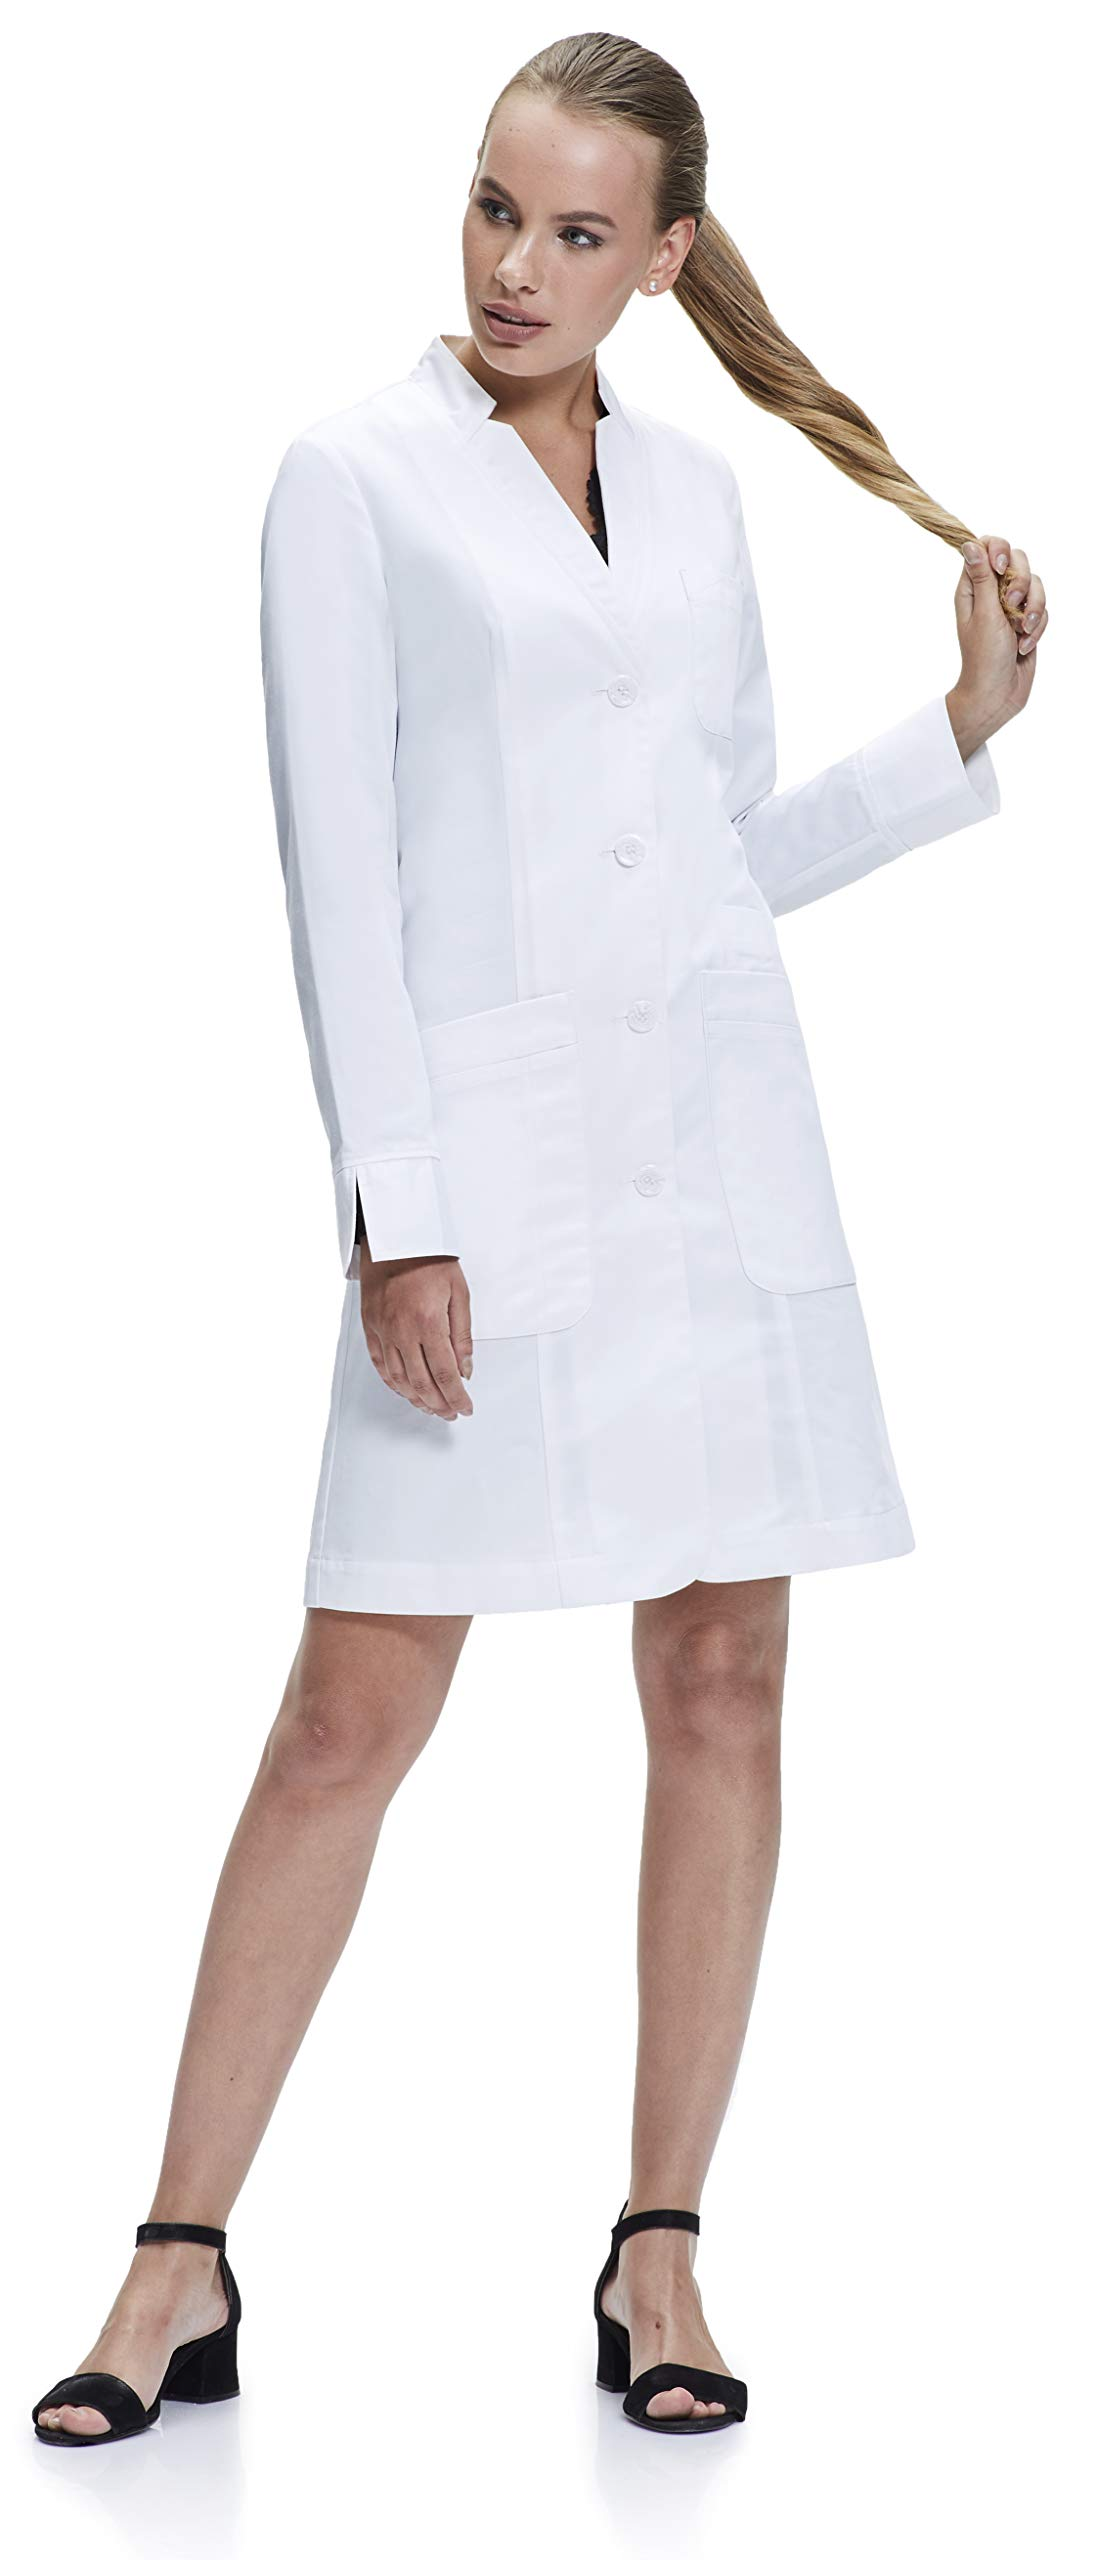 Dr. James Tailored Women's Fitted Lab Coat with Fold Back Cuff (37 inch Length) US 4